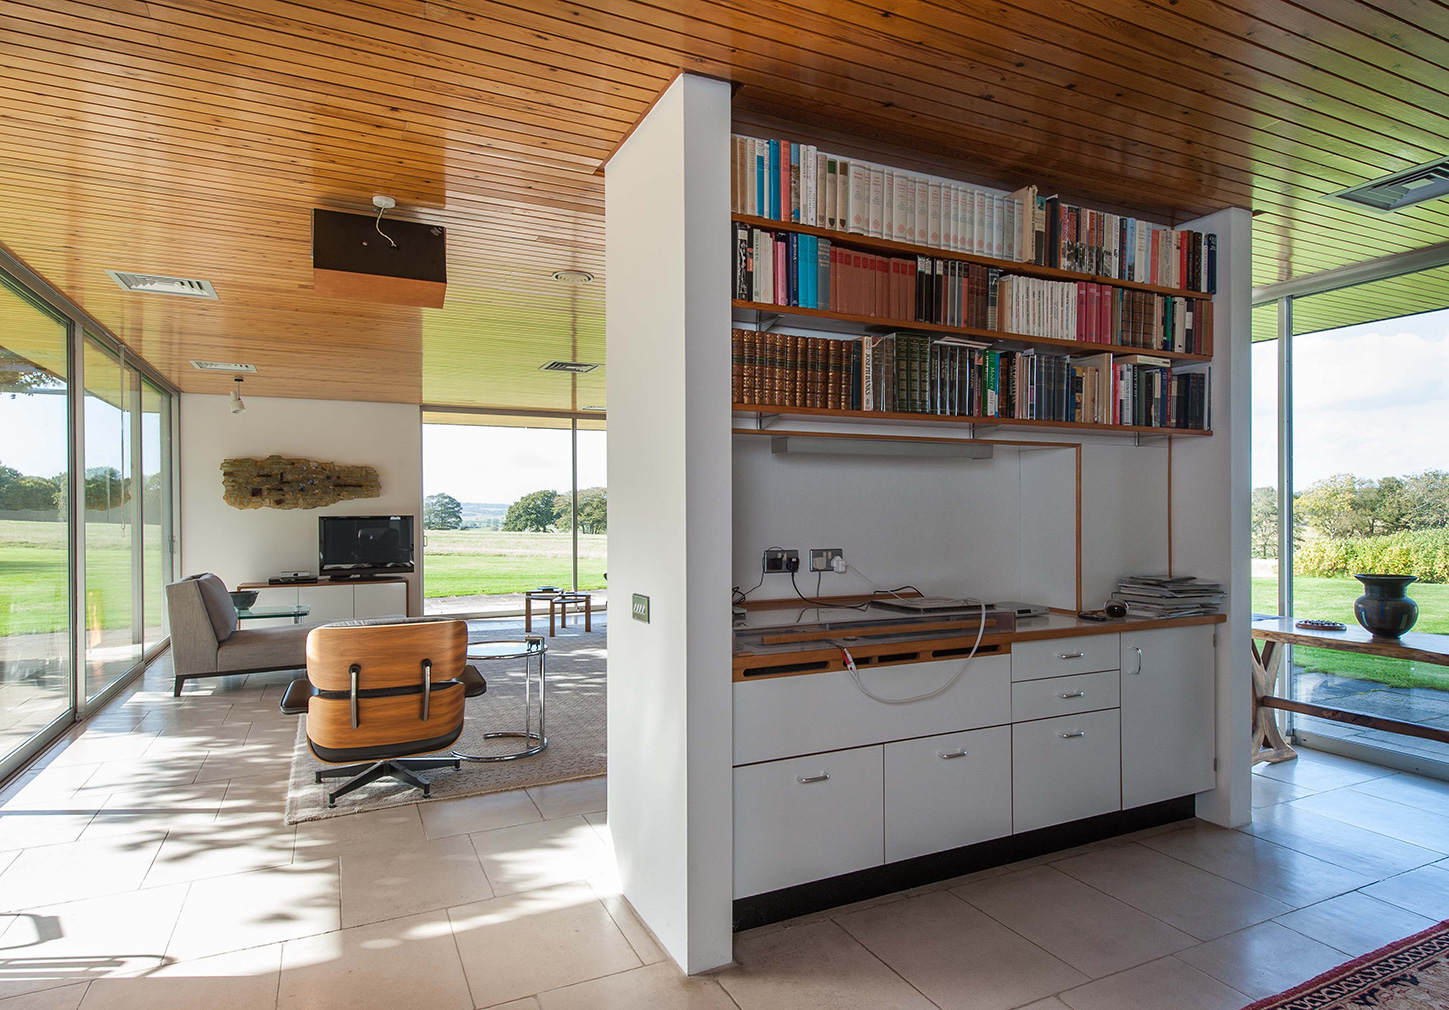 Mies-inspired midcentury home is for sale in the UK's Rye